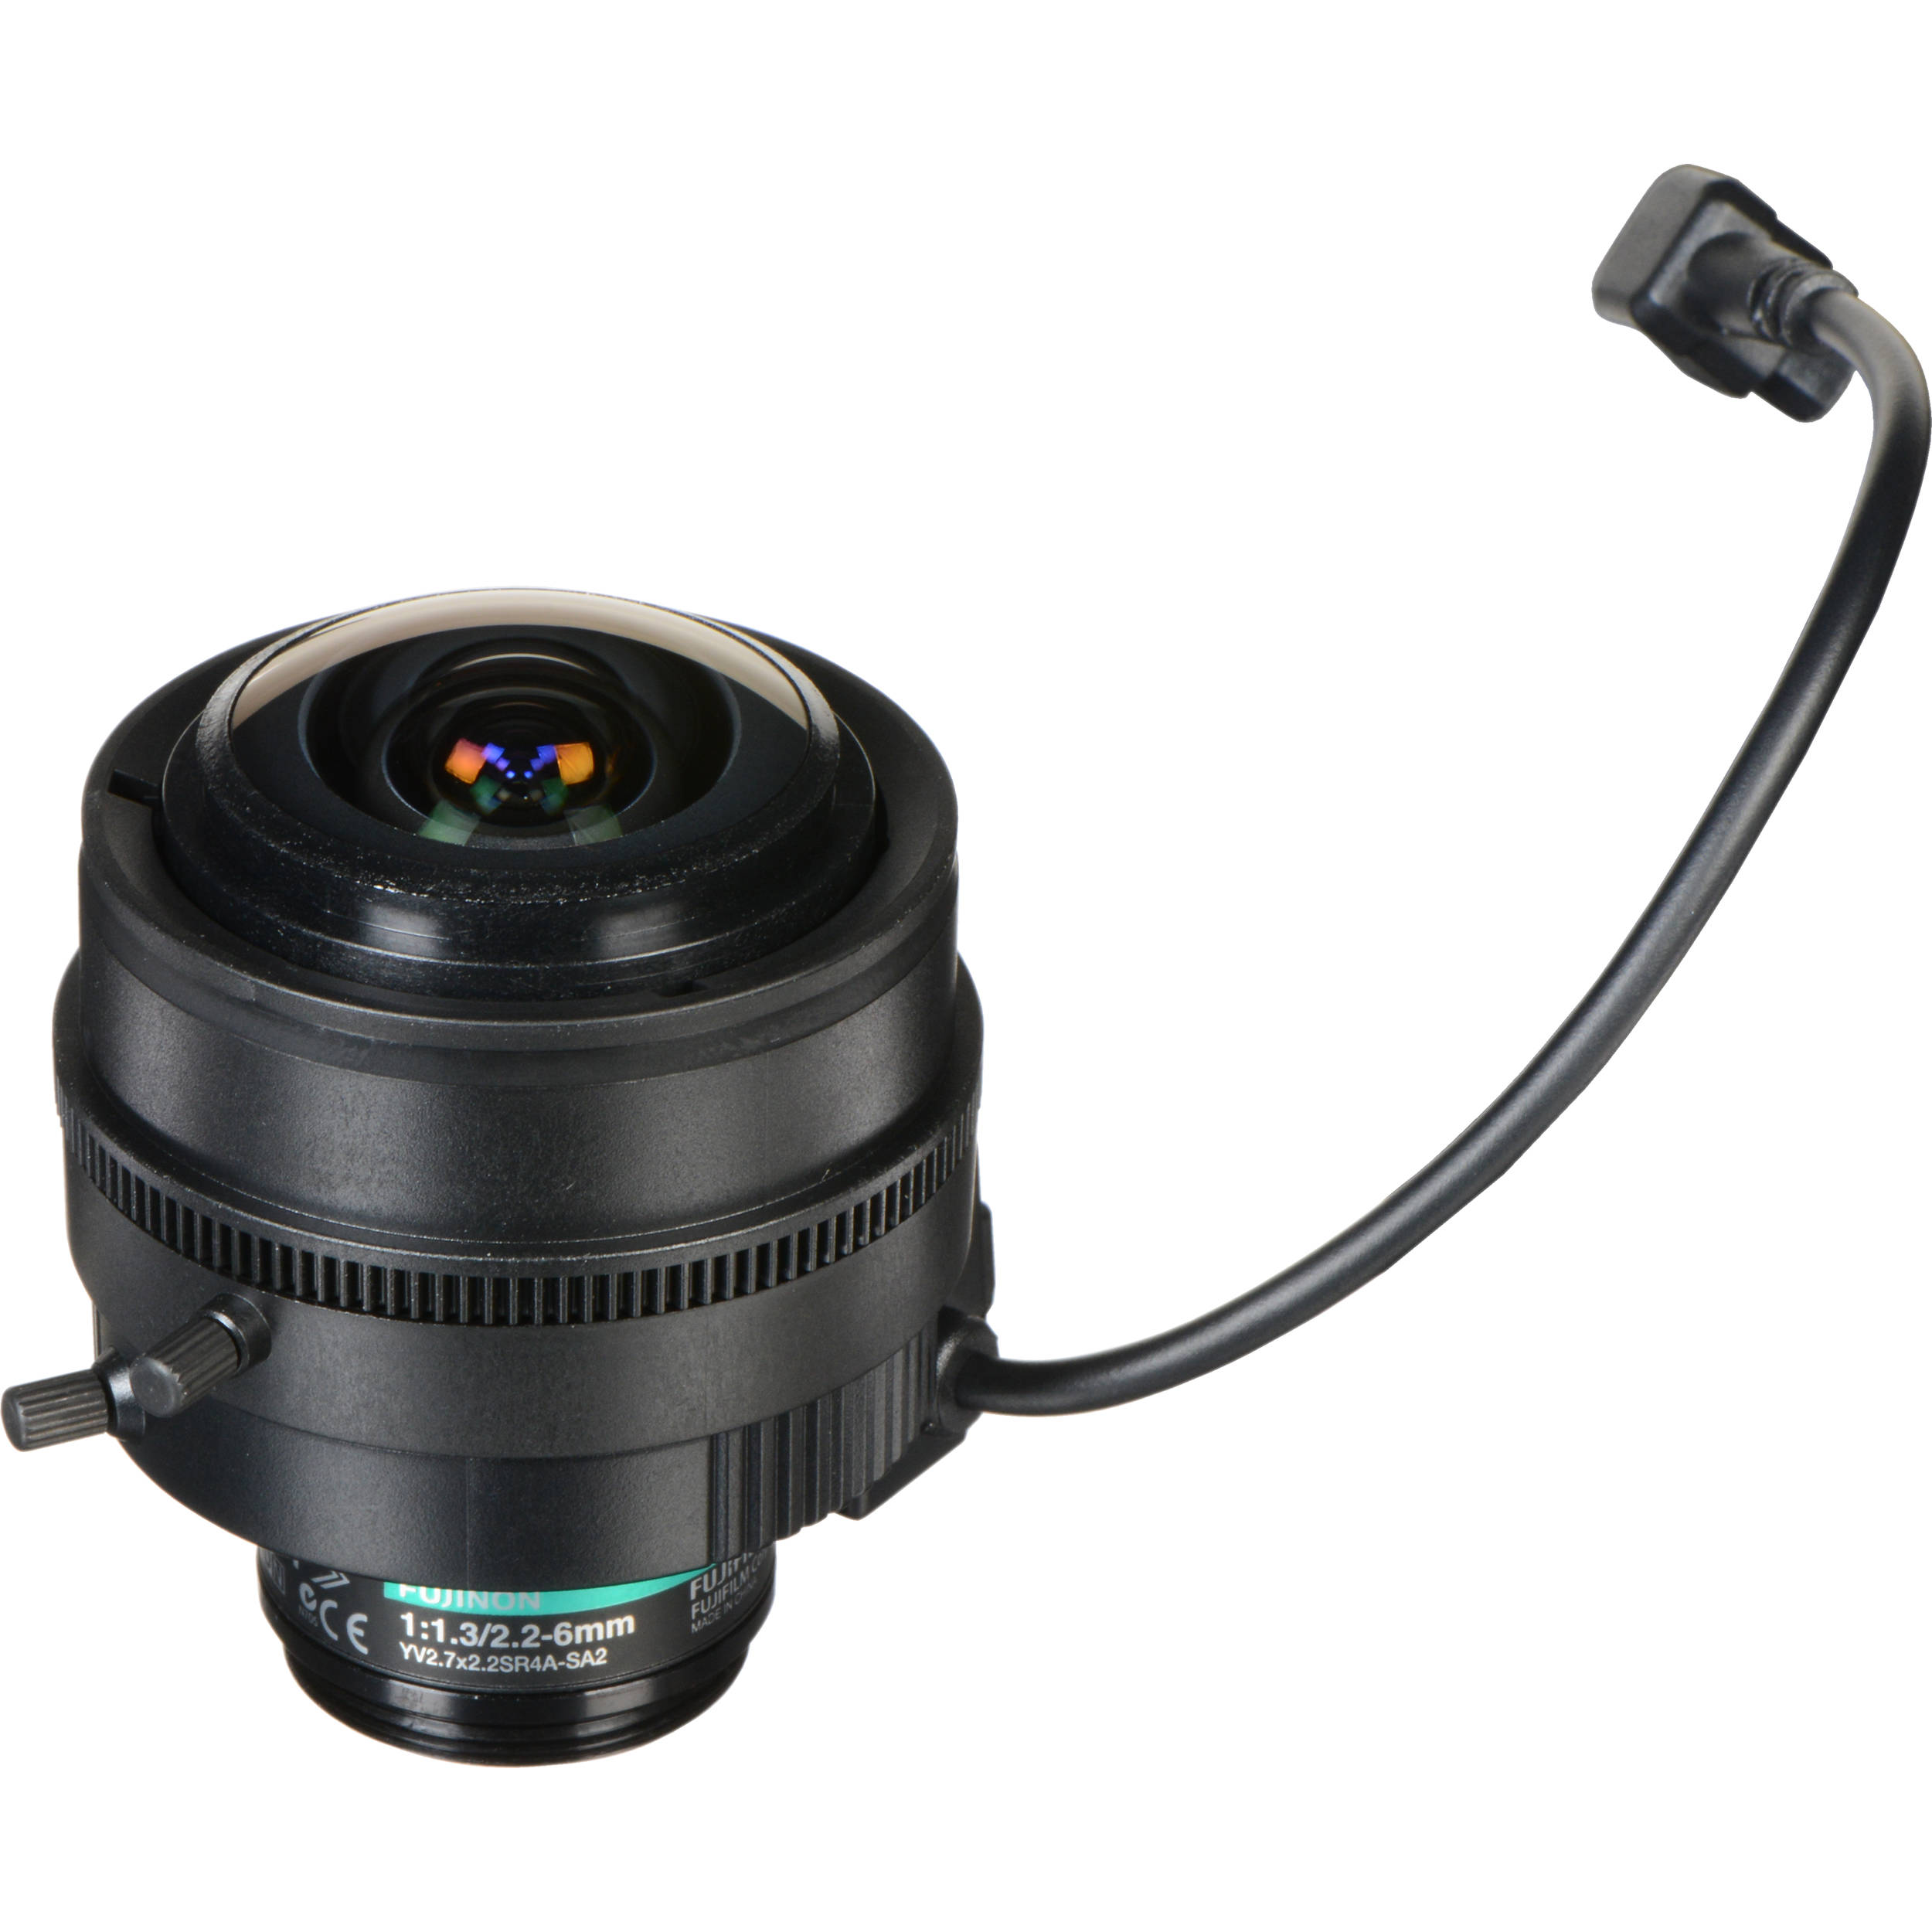 Marshall Electronics 2.2-6mm Fujinon Varifocal Lens